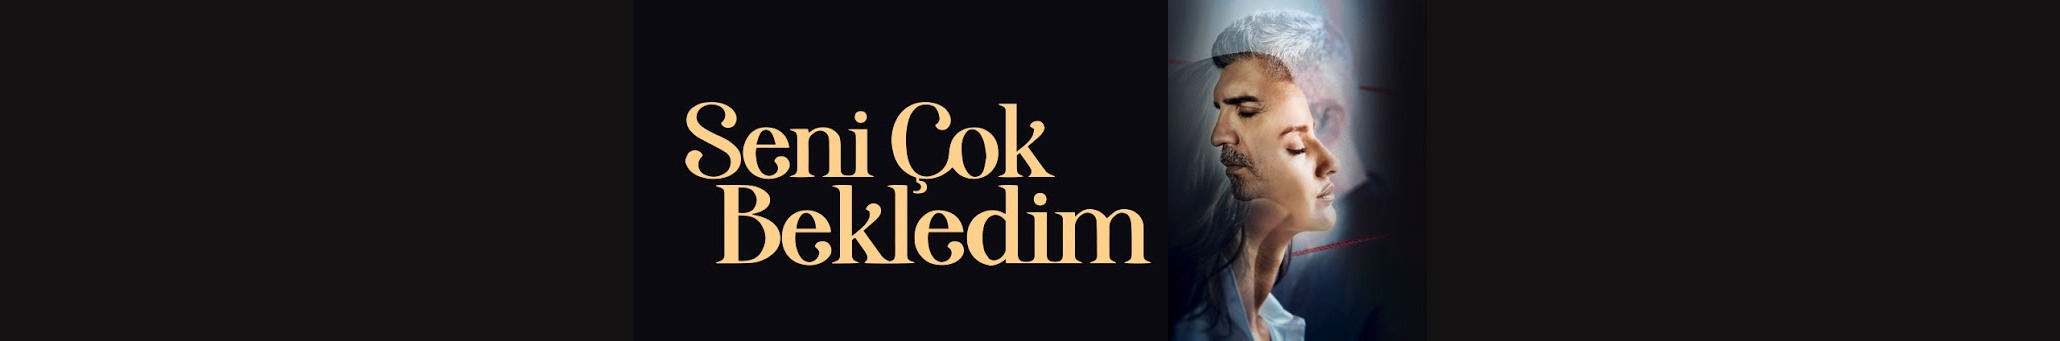 Seni Cok Bekledim Season 1 English subtitles | I Waited a Lot For You